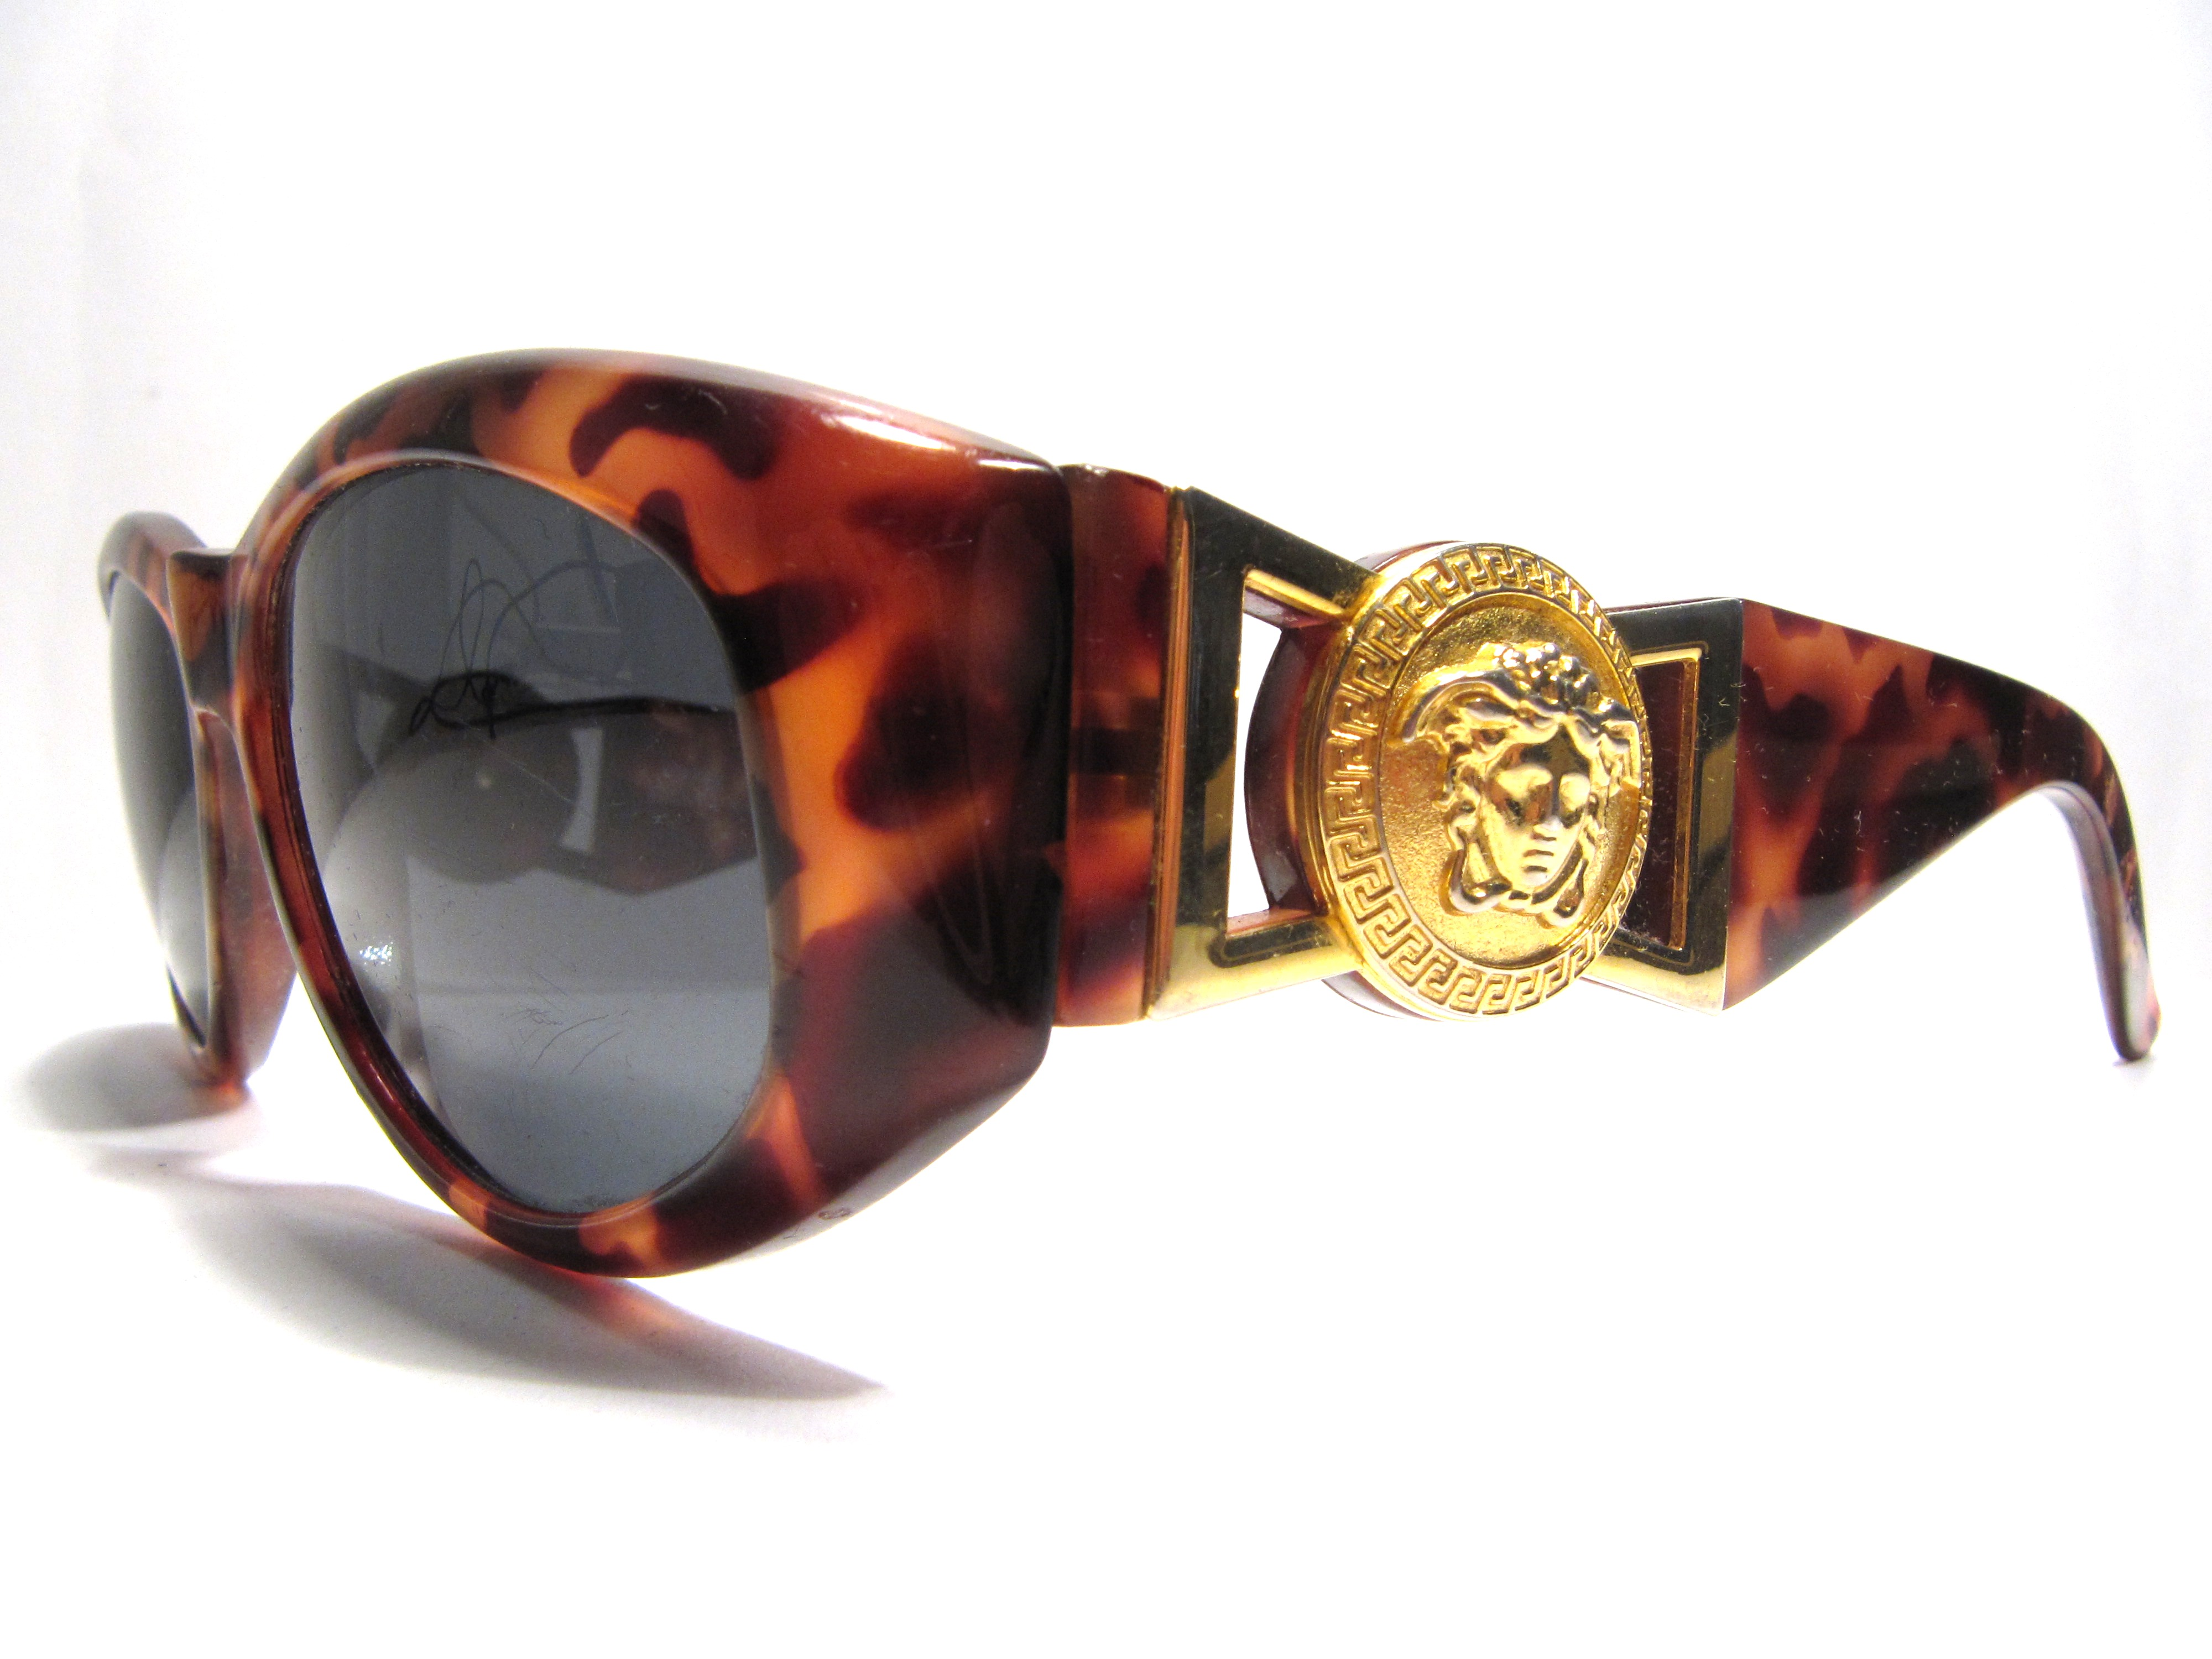 5de5038adba Versace Home Related Keywords   Suggestions - Versace Home Long Tail  Keywords